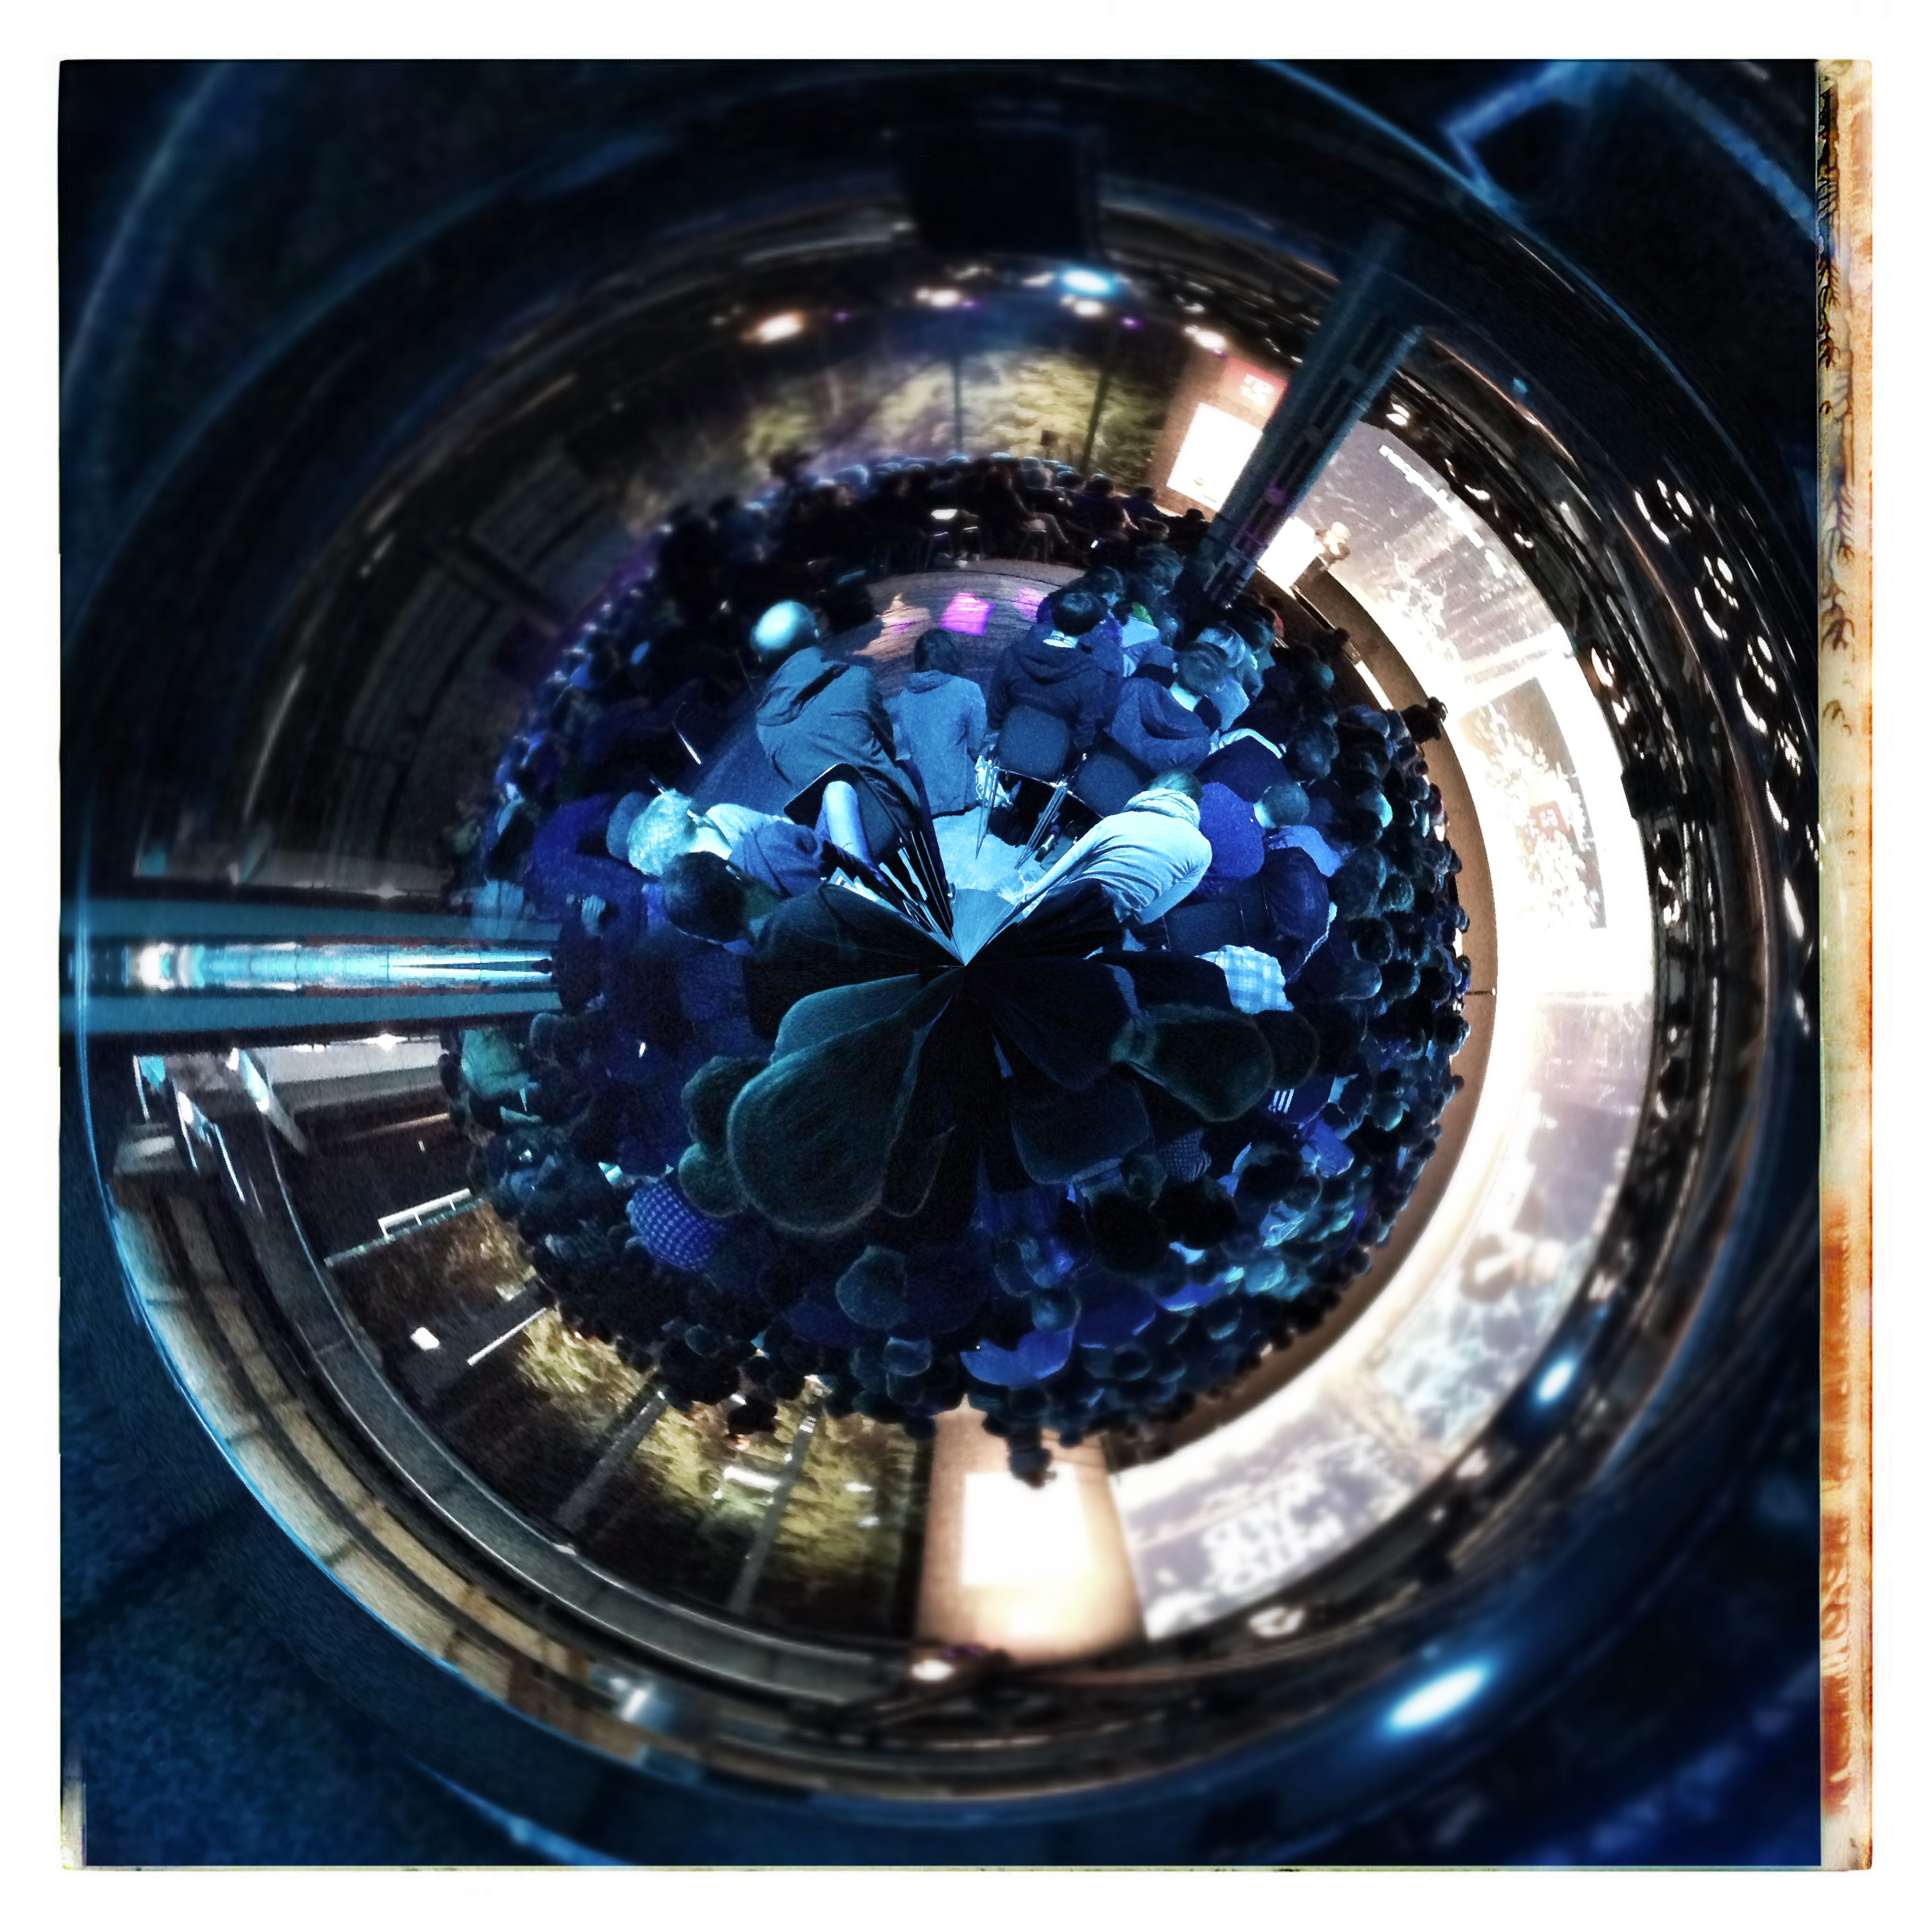 Re:publica 2014, Fish-Eyed #2